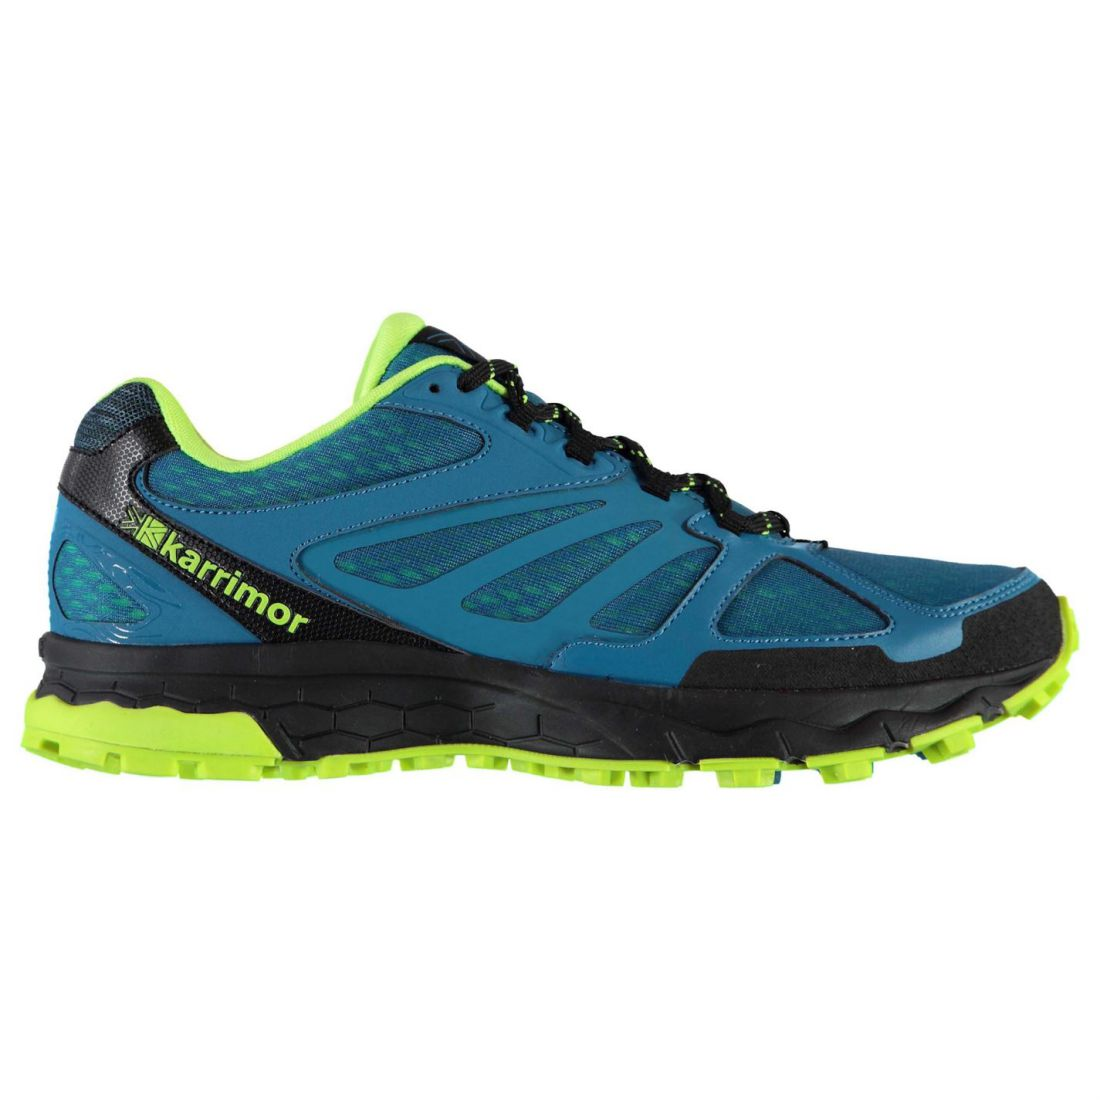 1a145ac16a2 Karrimor Mens Tempo 5 Trail Running Shoes Trainers Lightweight Mesh Upper